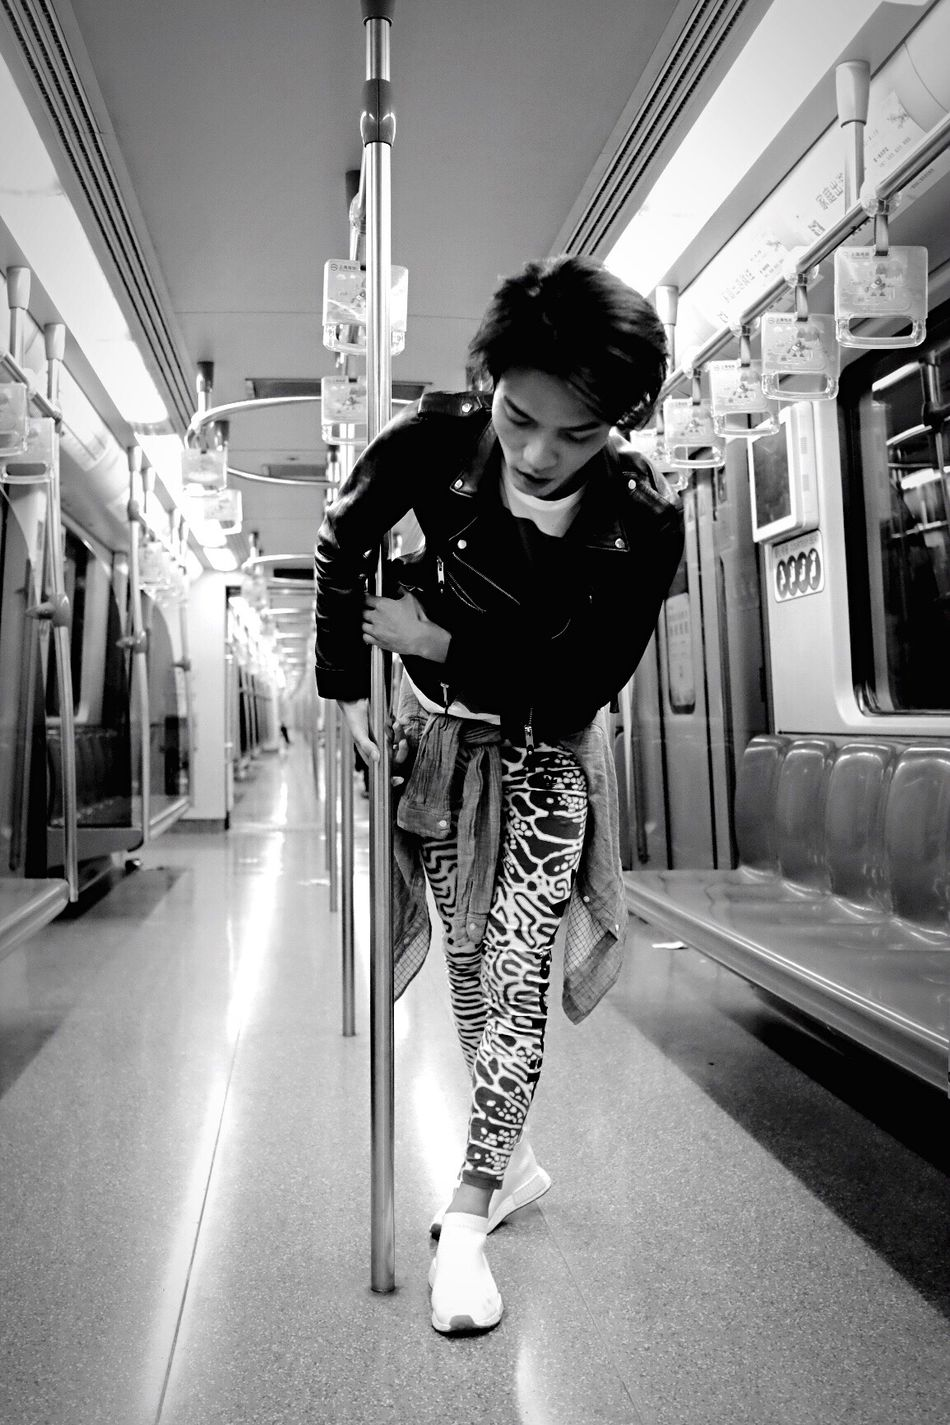 Real People Train - Vehicle One Person Young Adult Lifestyles The Week On Eyem Blackandwhite Black And White Black & White Blackandwhite Photography Black And White Photography Black&white Blackandwhitephotography Black And White Collection  People People Watching People Photography Peoplephotography Dancer EyeEmNewHere Black And White Collection  People Of EyeEm Fashion Subway Train Standing